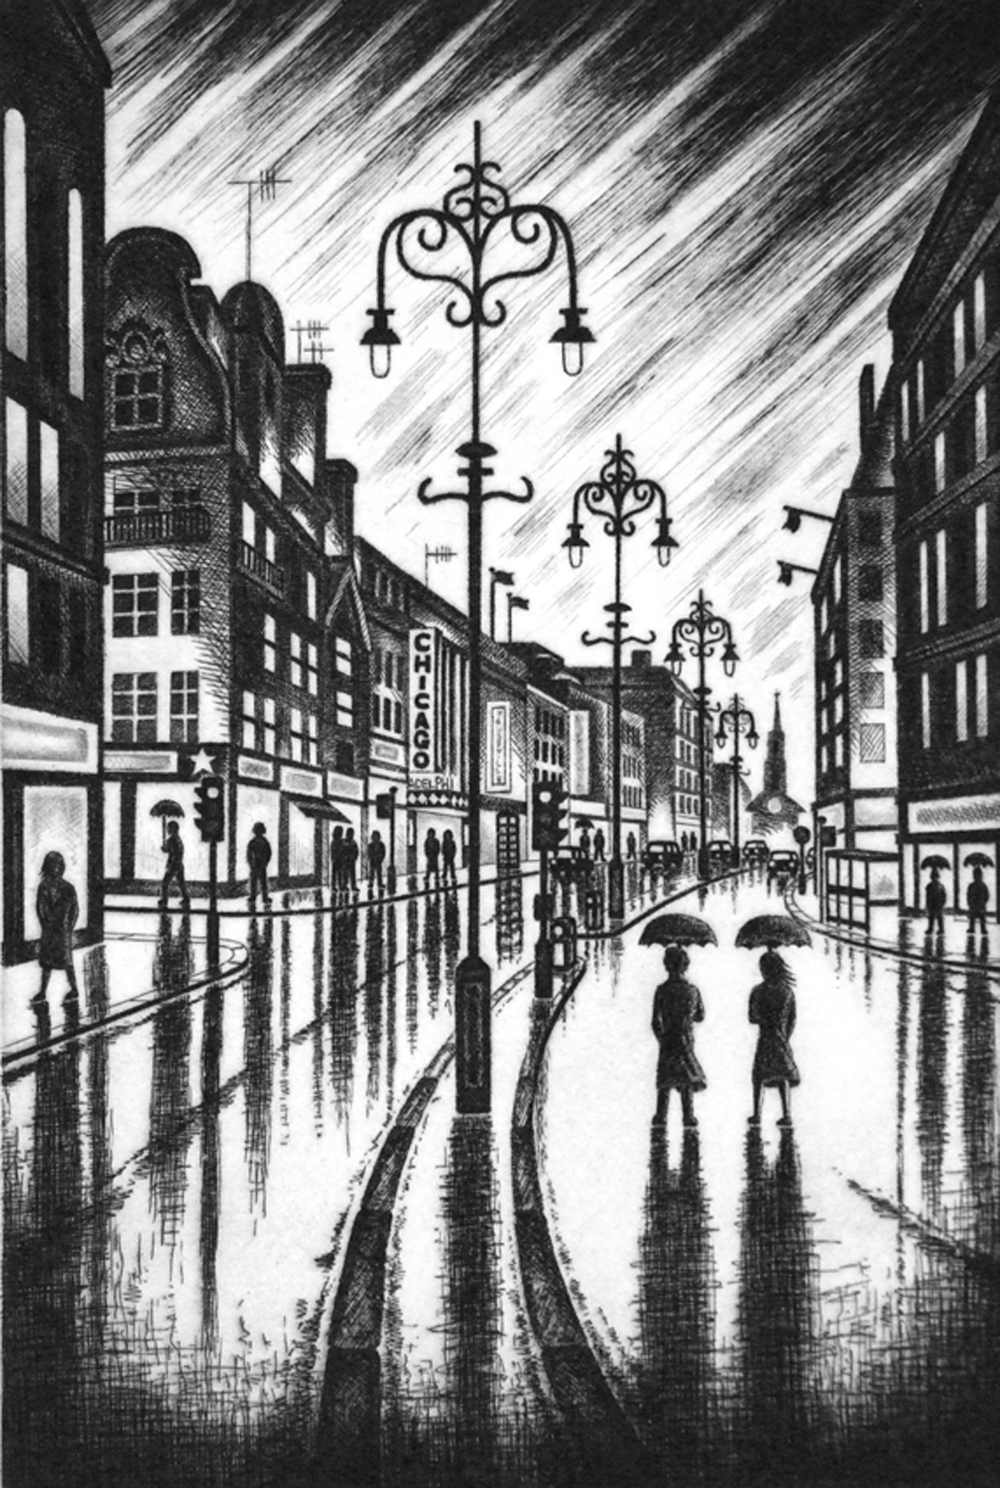 City Rain (The Strand, London WC2) etching 25 x 37 cm £195 (unframed)